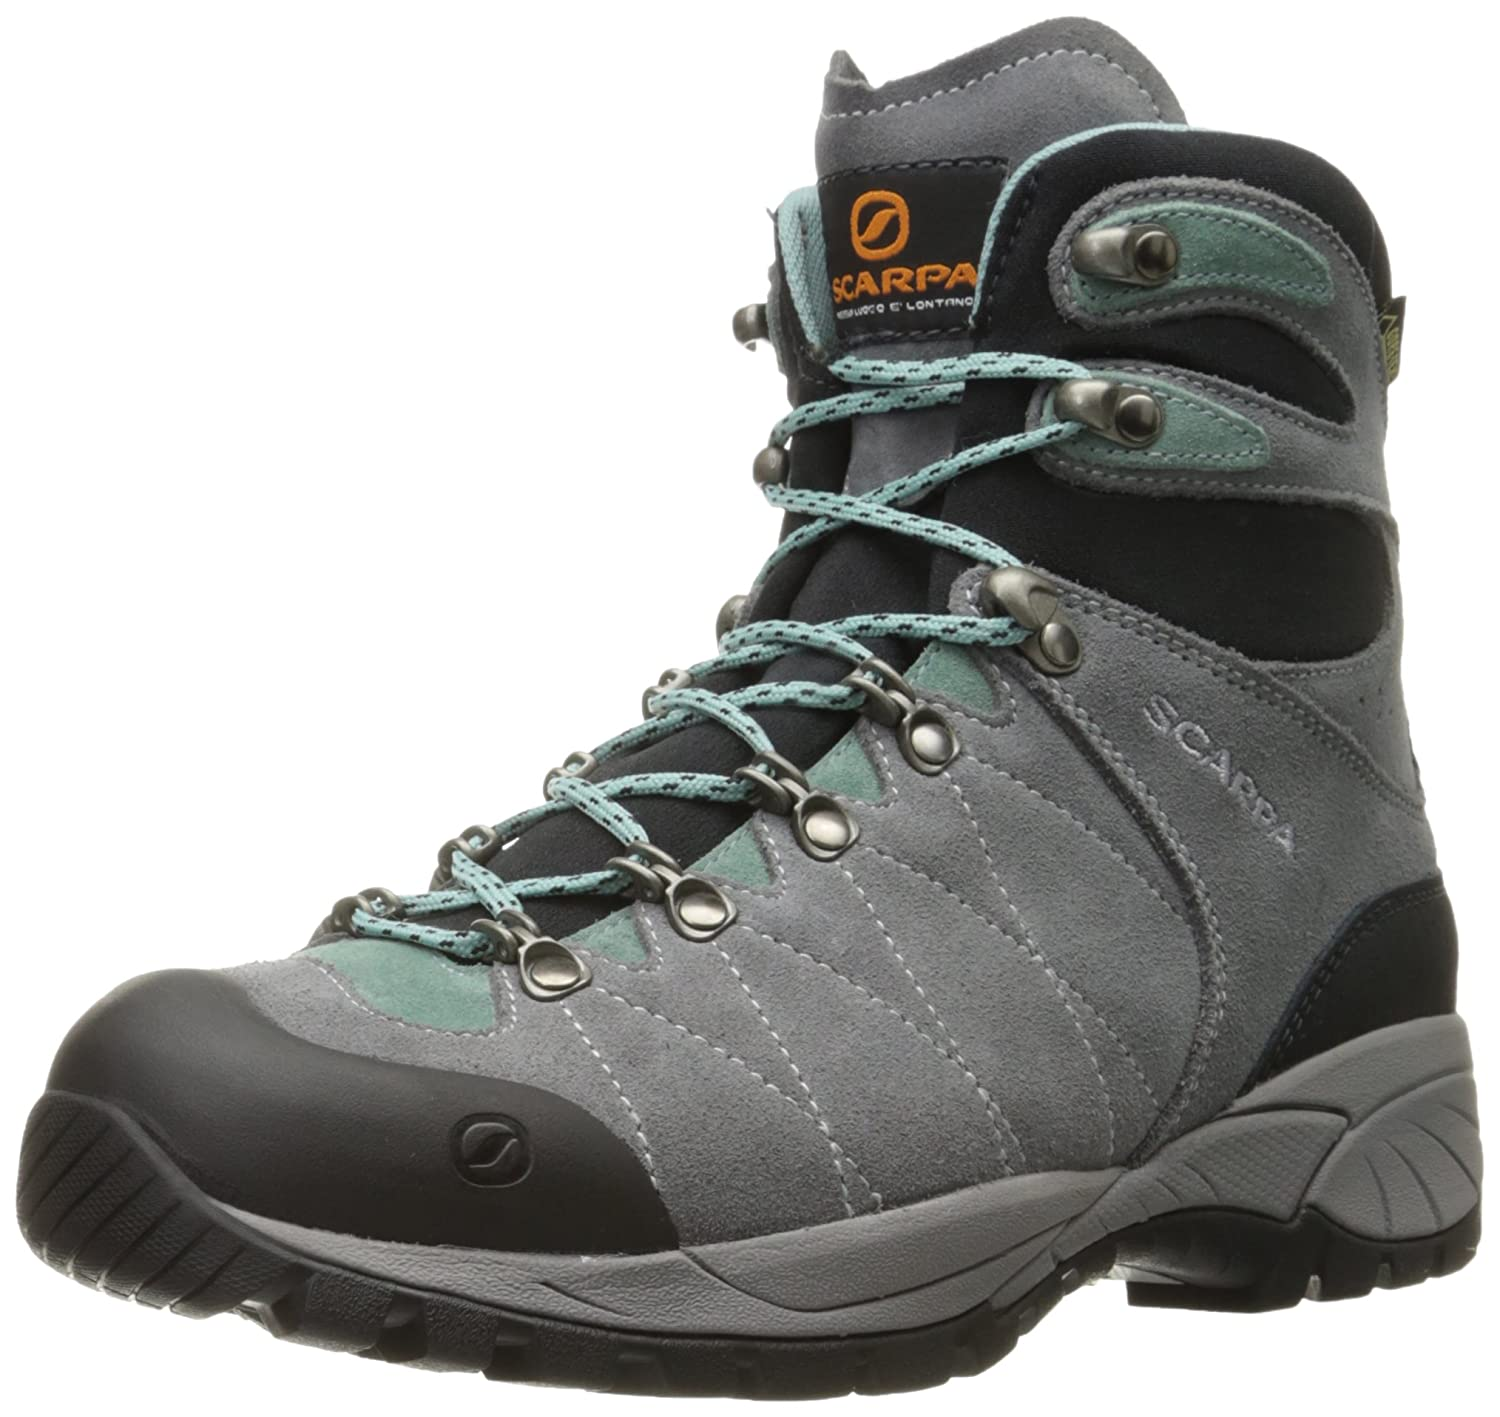 SCARPA Women's R-Evolution GTX WMN Hiking Boot B0126JVB14 40 M EU / 8.5 B(M) US|Smoke/Jade